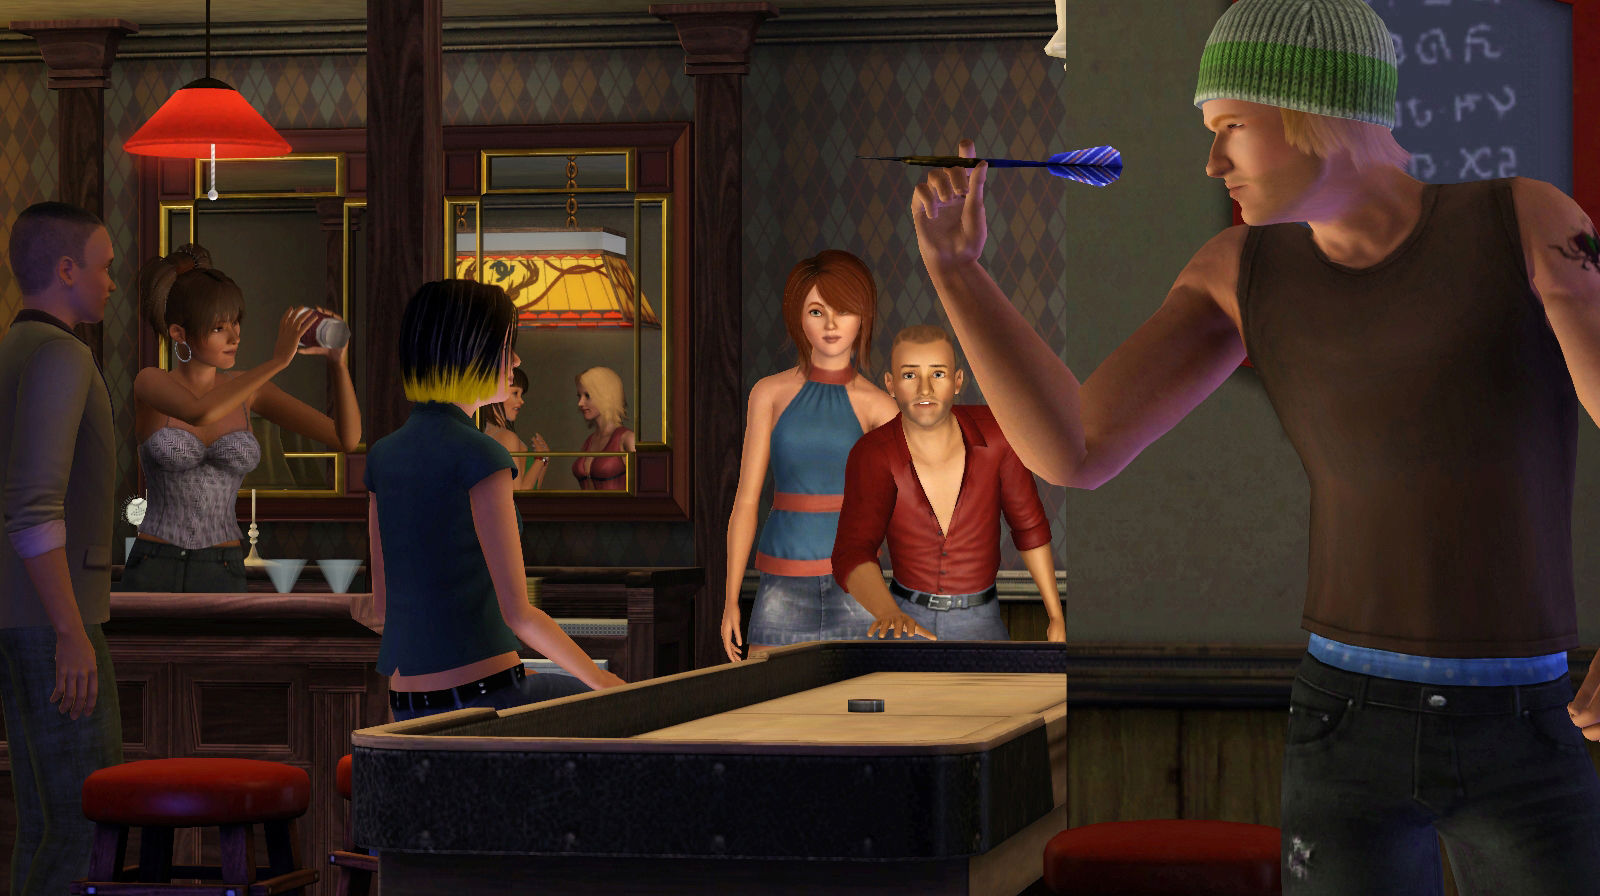 The sims 3 в сумерках the sims 3 late night multi rus